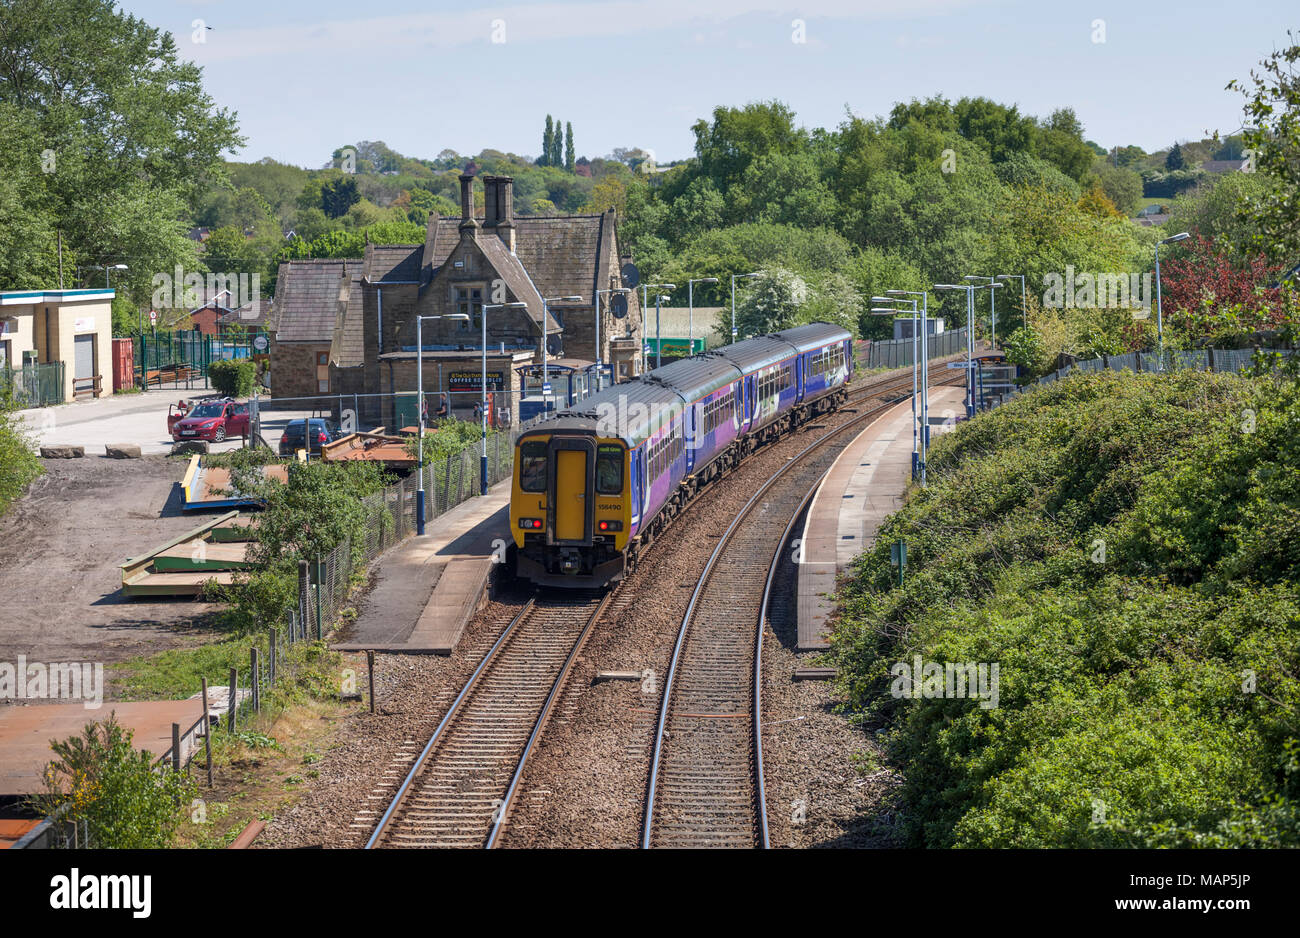 Cummins station stock photos cummins station stock images alamy northern rail class 156 sprinter trains at appley bridge railway station stock image biocorpaavc Images